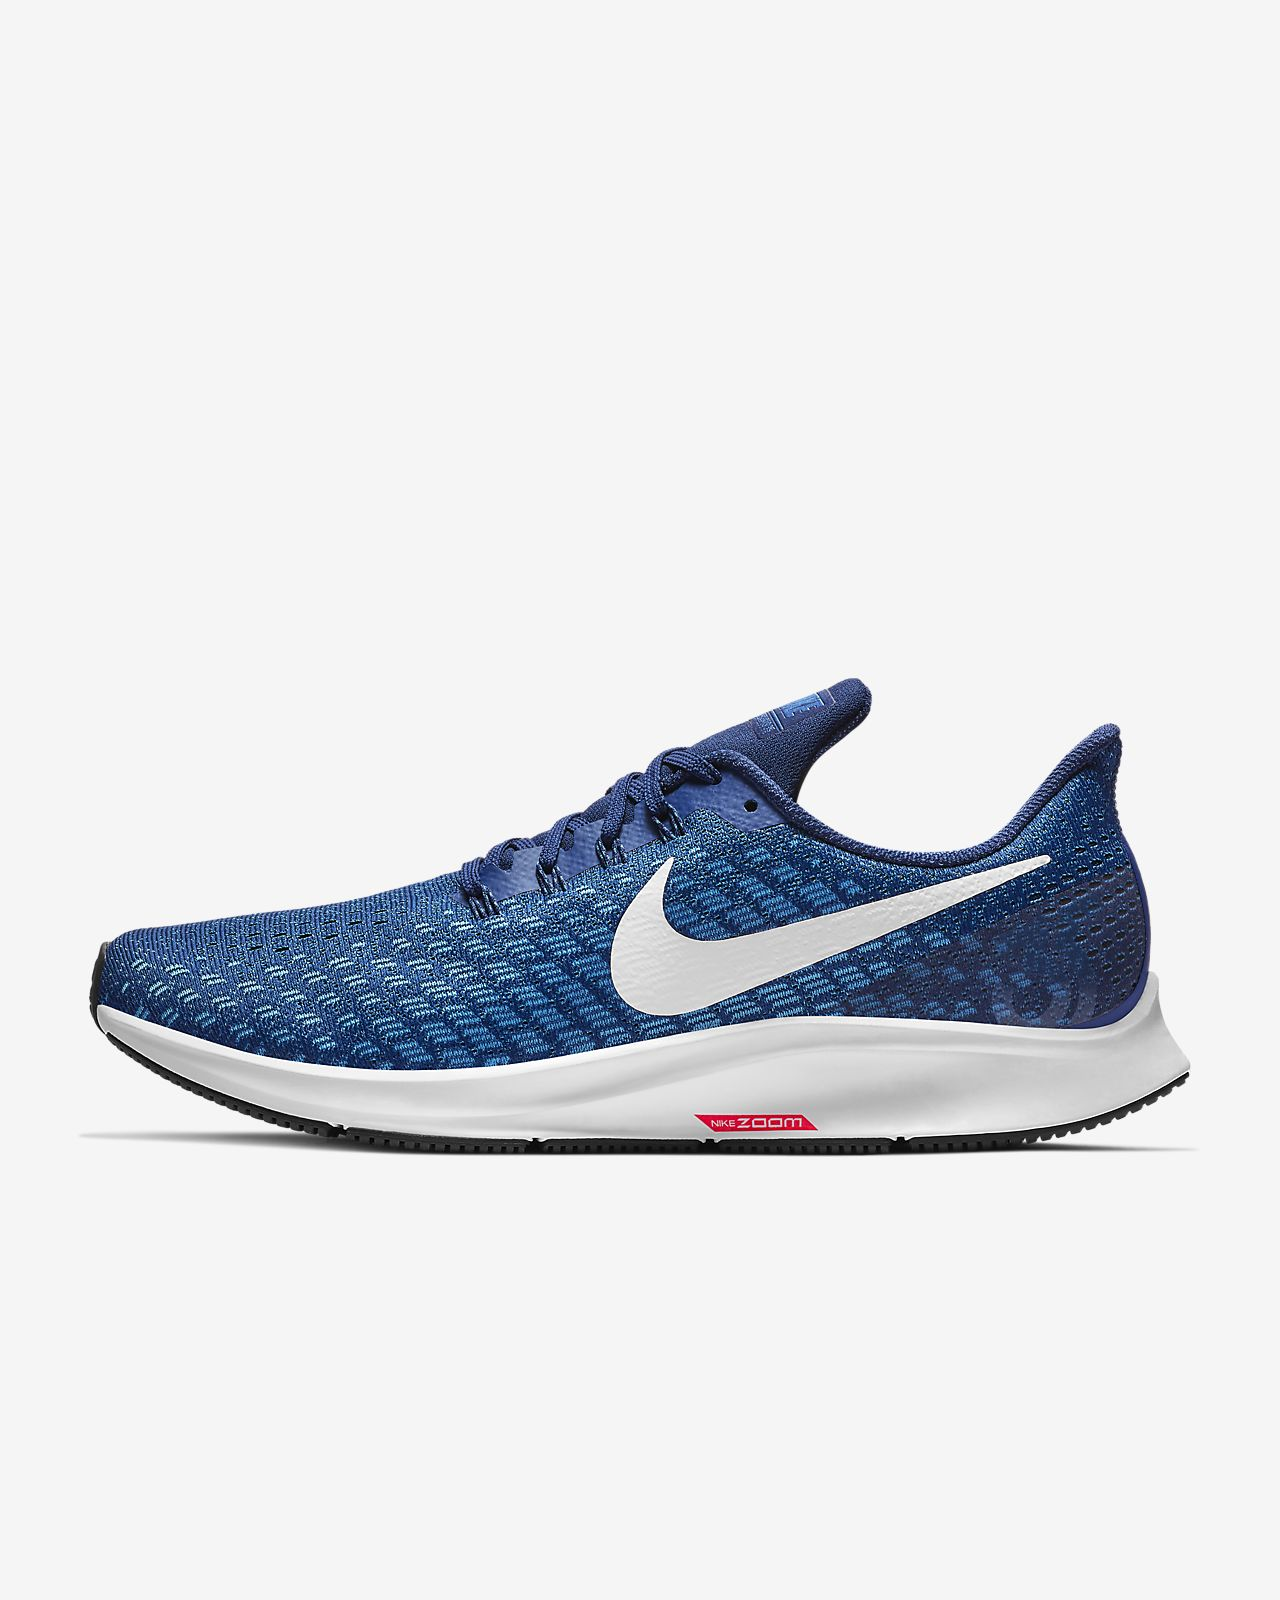 new style 5cd4c e6433 ... Nike Air Zoom Pegasus 35 Zapatillas de running - Hombre